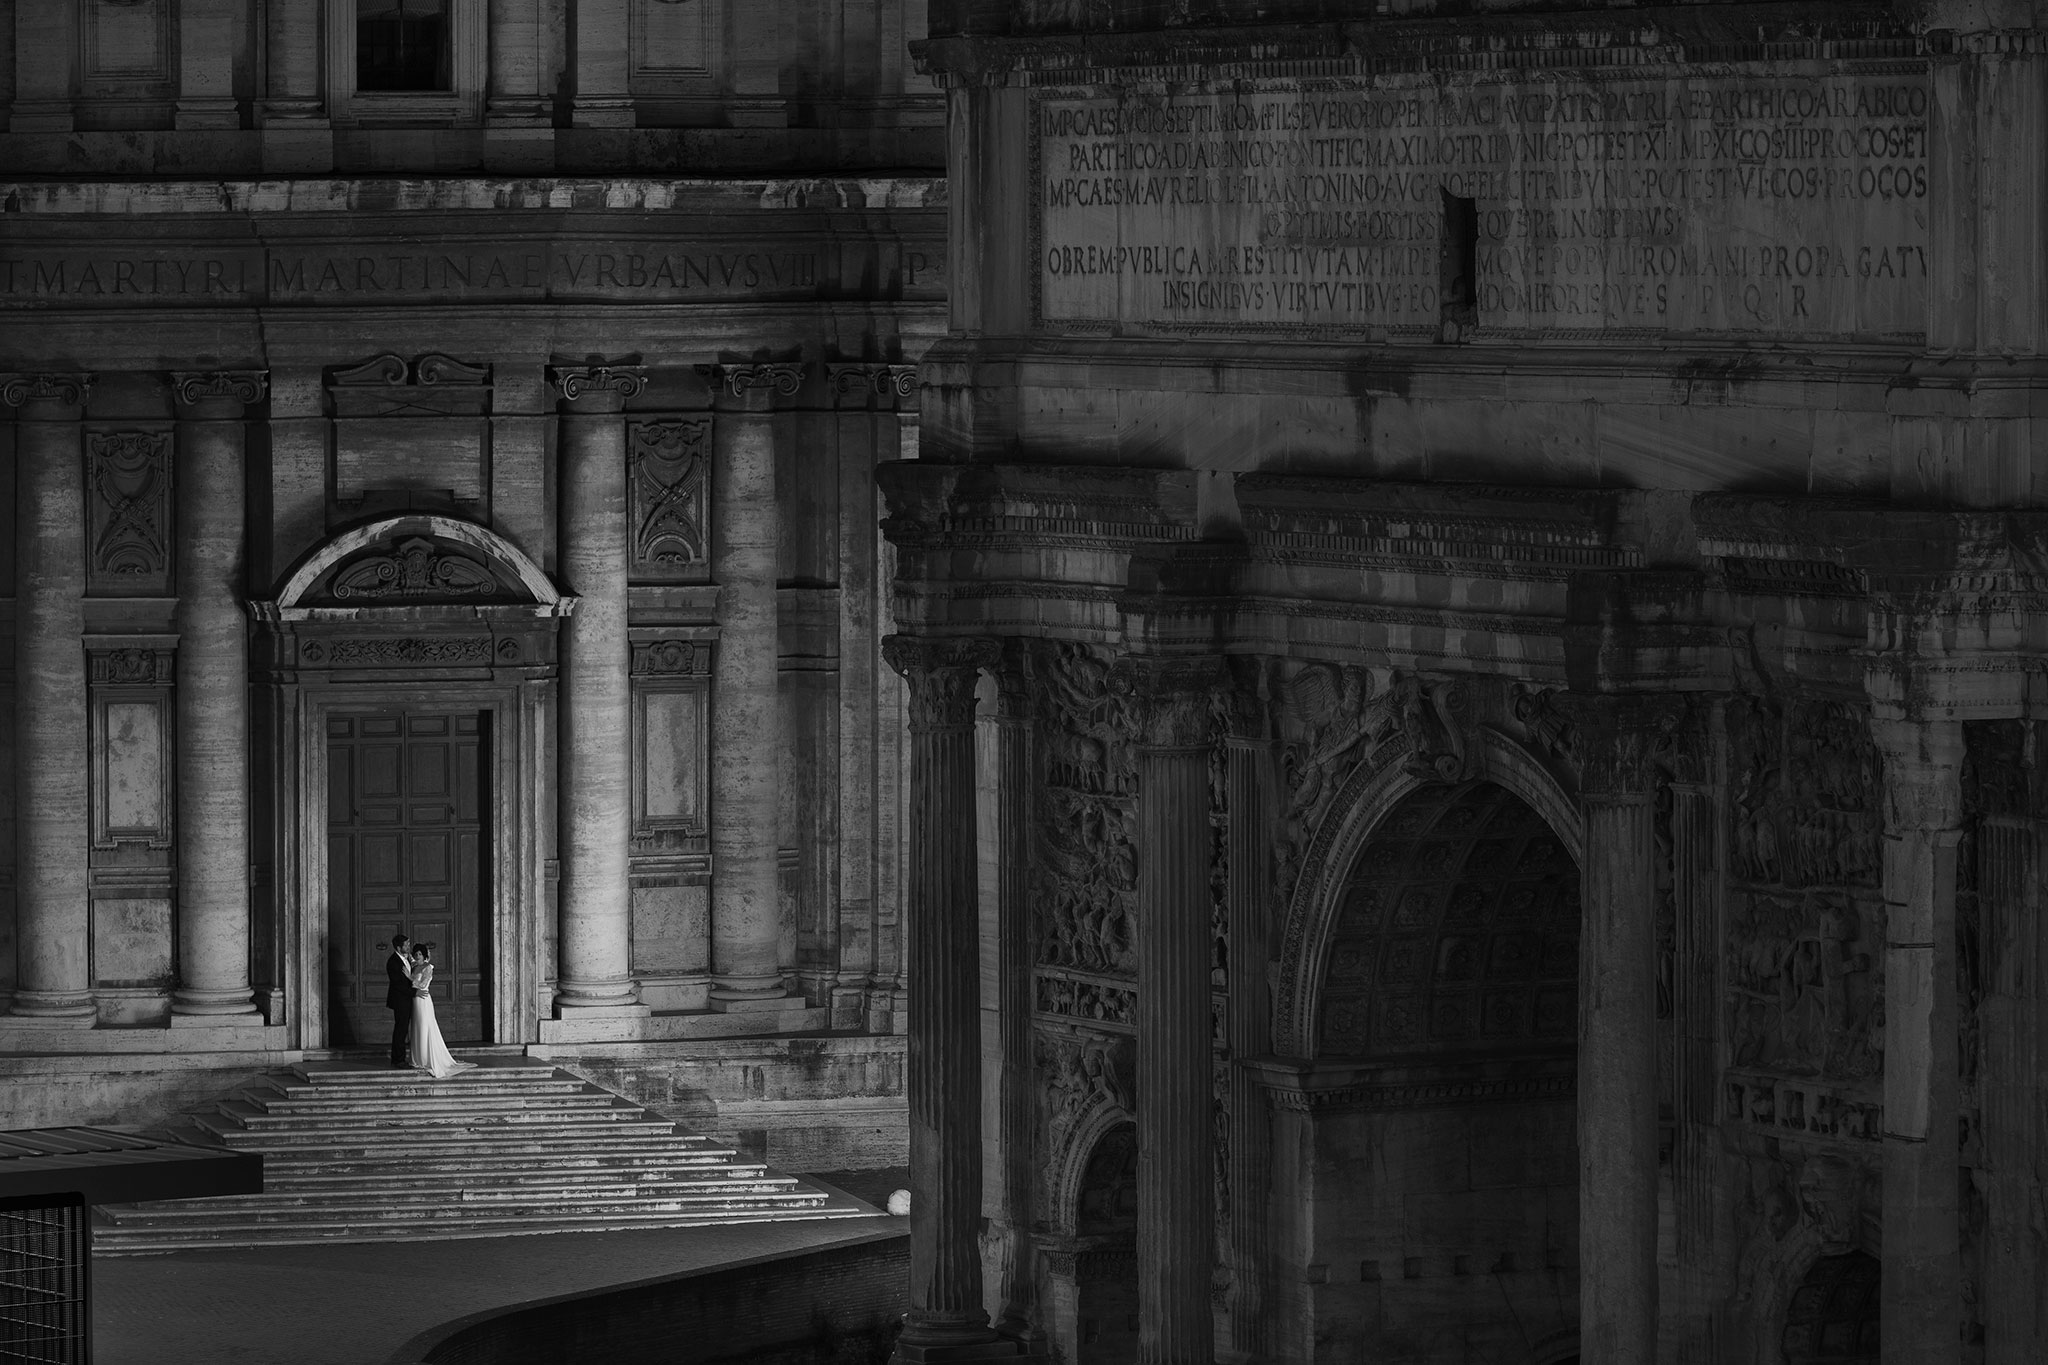 RomAntik, Ernst Merkhofer Exclusive, Fotograf, Rom, Signature Shots , Exlusive, Signature Shot, Ernst Merkhofer, Pärchen, junges Paar, Foto Session, Photo Shoot, Staircase, Love, Portraits, Portrait, Rome, Fori Cesari, Forum Romanum, sw, bnw,